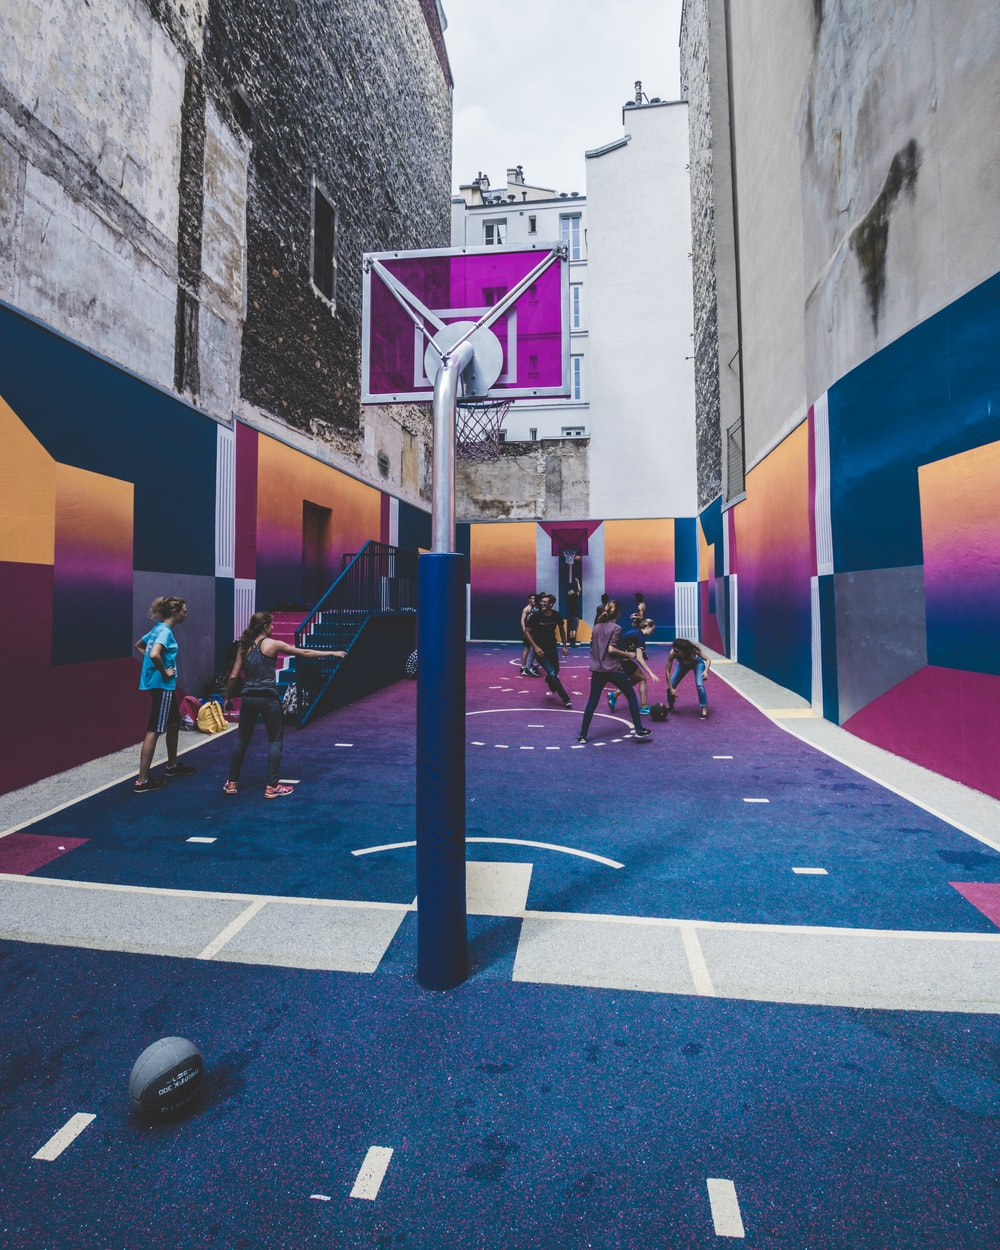 group of men playing basketball on alleyway